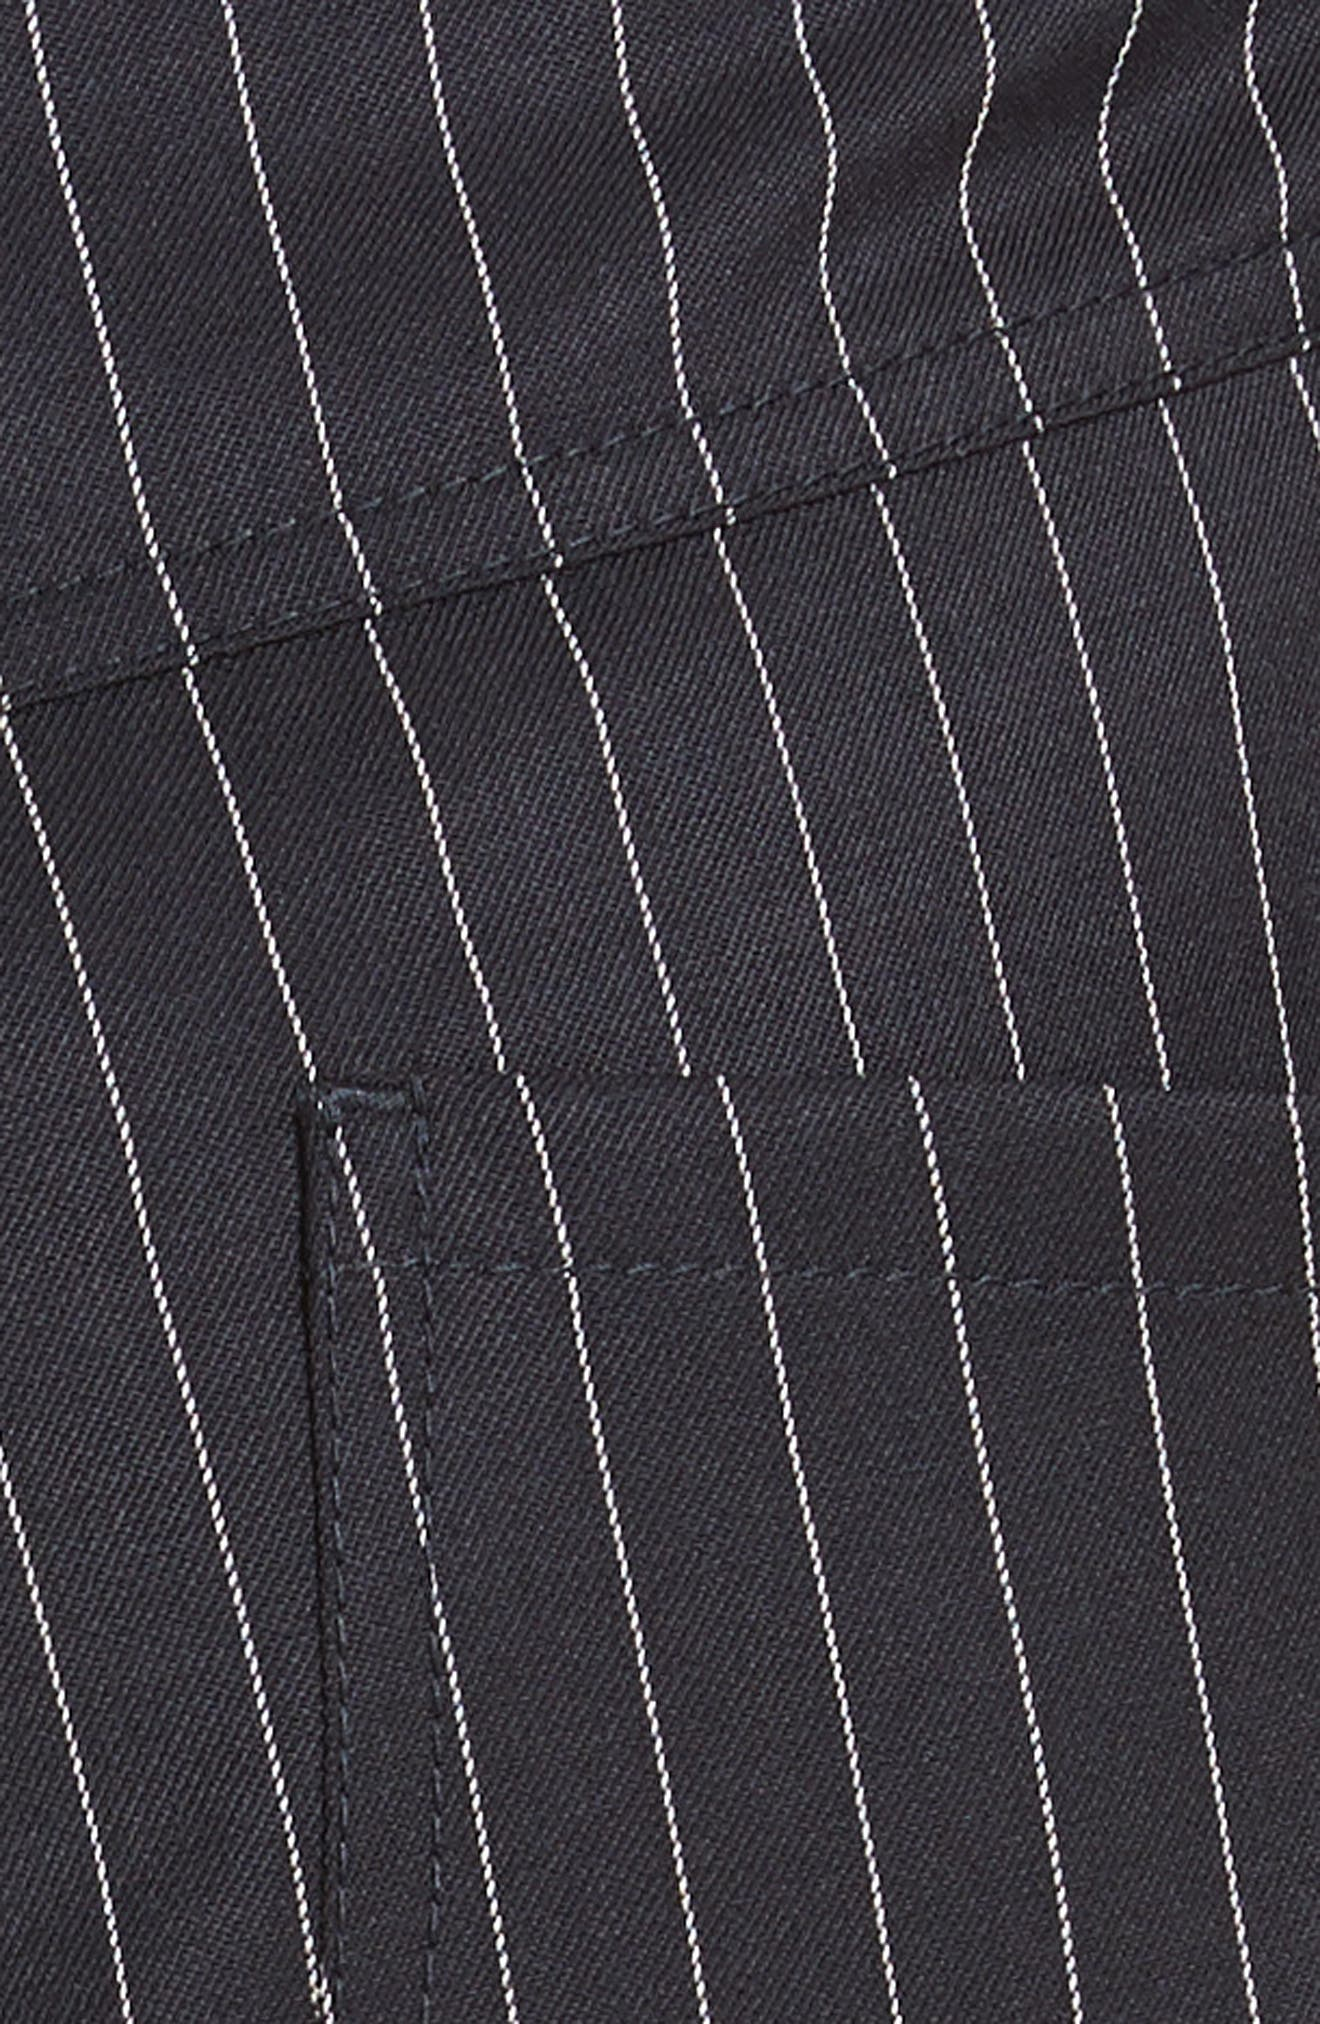 Alternate Image 5  - Stella McCartney Ruched Pinstripe Trousers